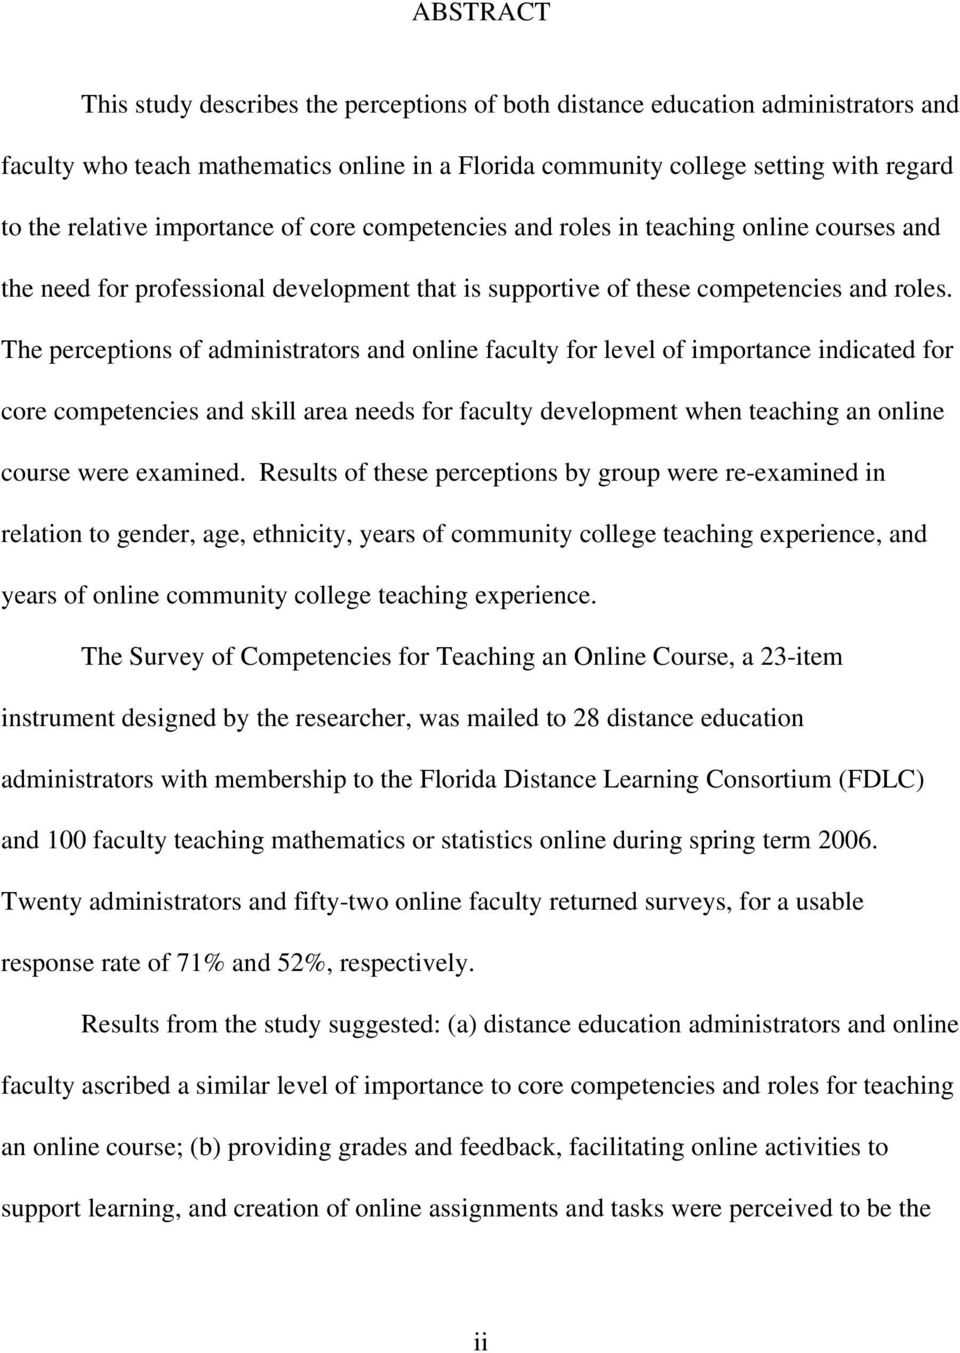 The perceptions of administrators and online faculty for level of importance indicated for core competencies and skill area needs for faculty development when teaching an online course were examined.